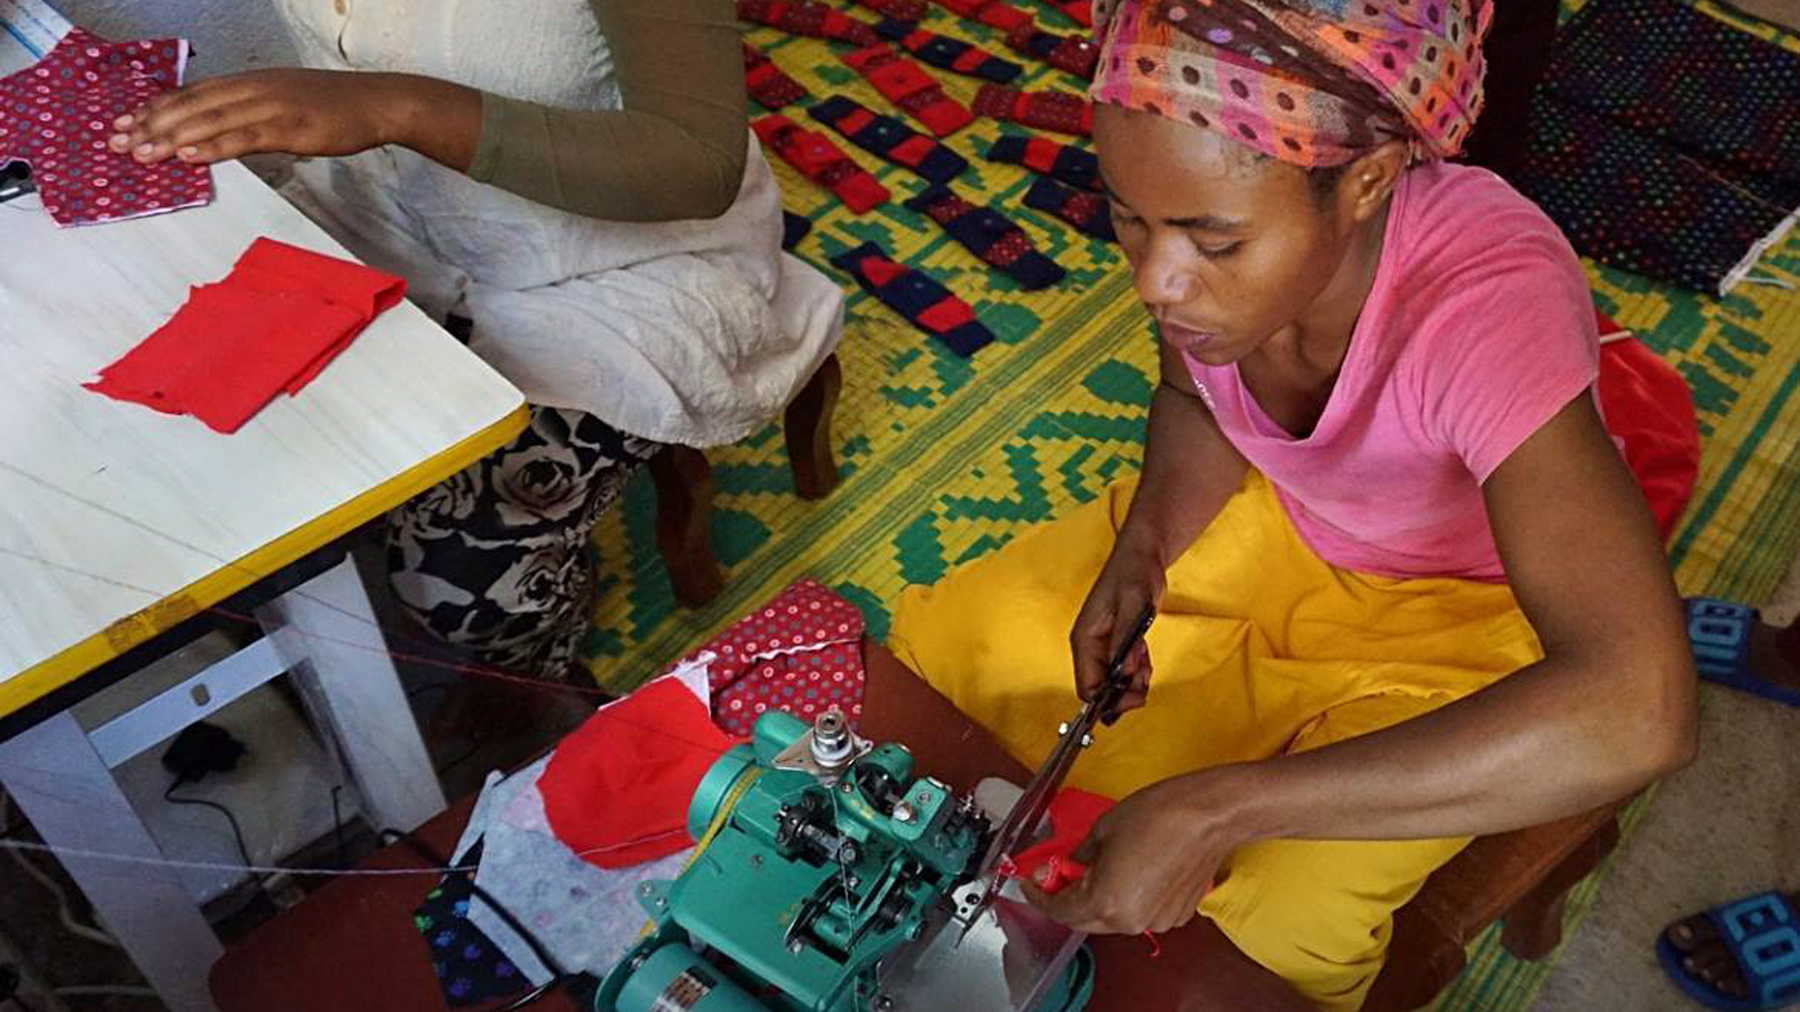 A woman in Rwanda making Days for Girls kits at an orphanage, in coordination with World Dance for Humanity (Photo Courtesy of   Genevieve Feiner/ World Dance for Humanity)